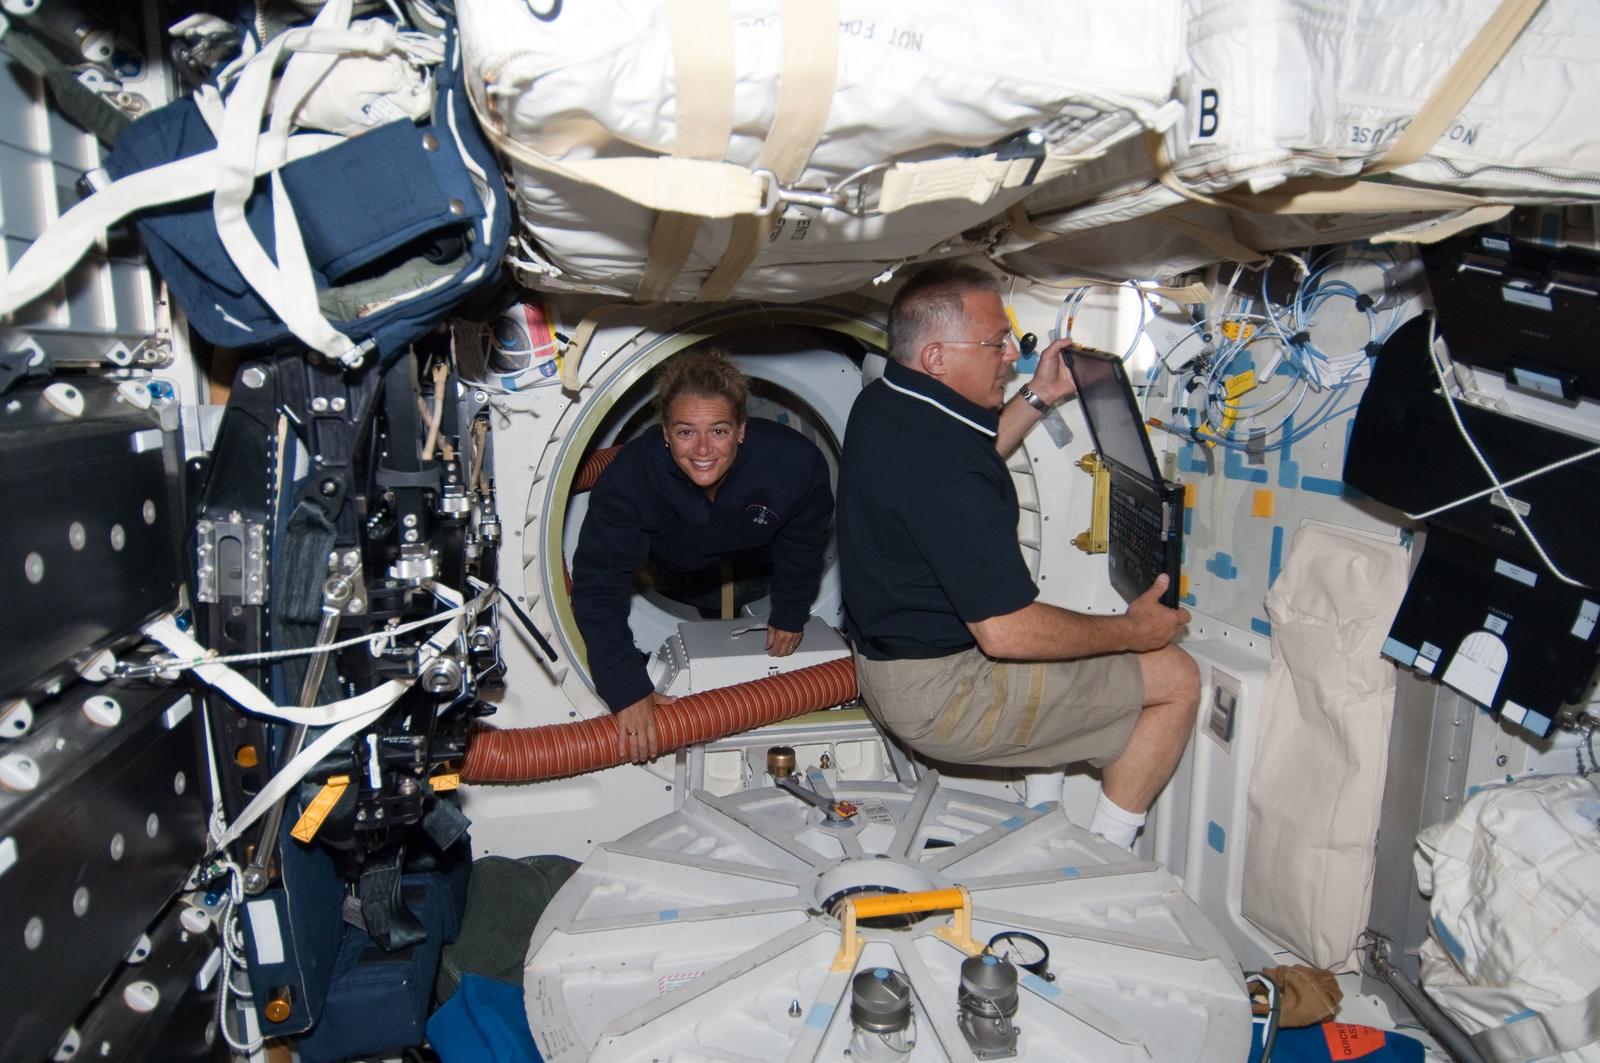 S127E006973 - STS-127 - Payette and Wolf in the MDDK during STS-127 / Expedition 20 Joint Operations